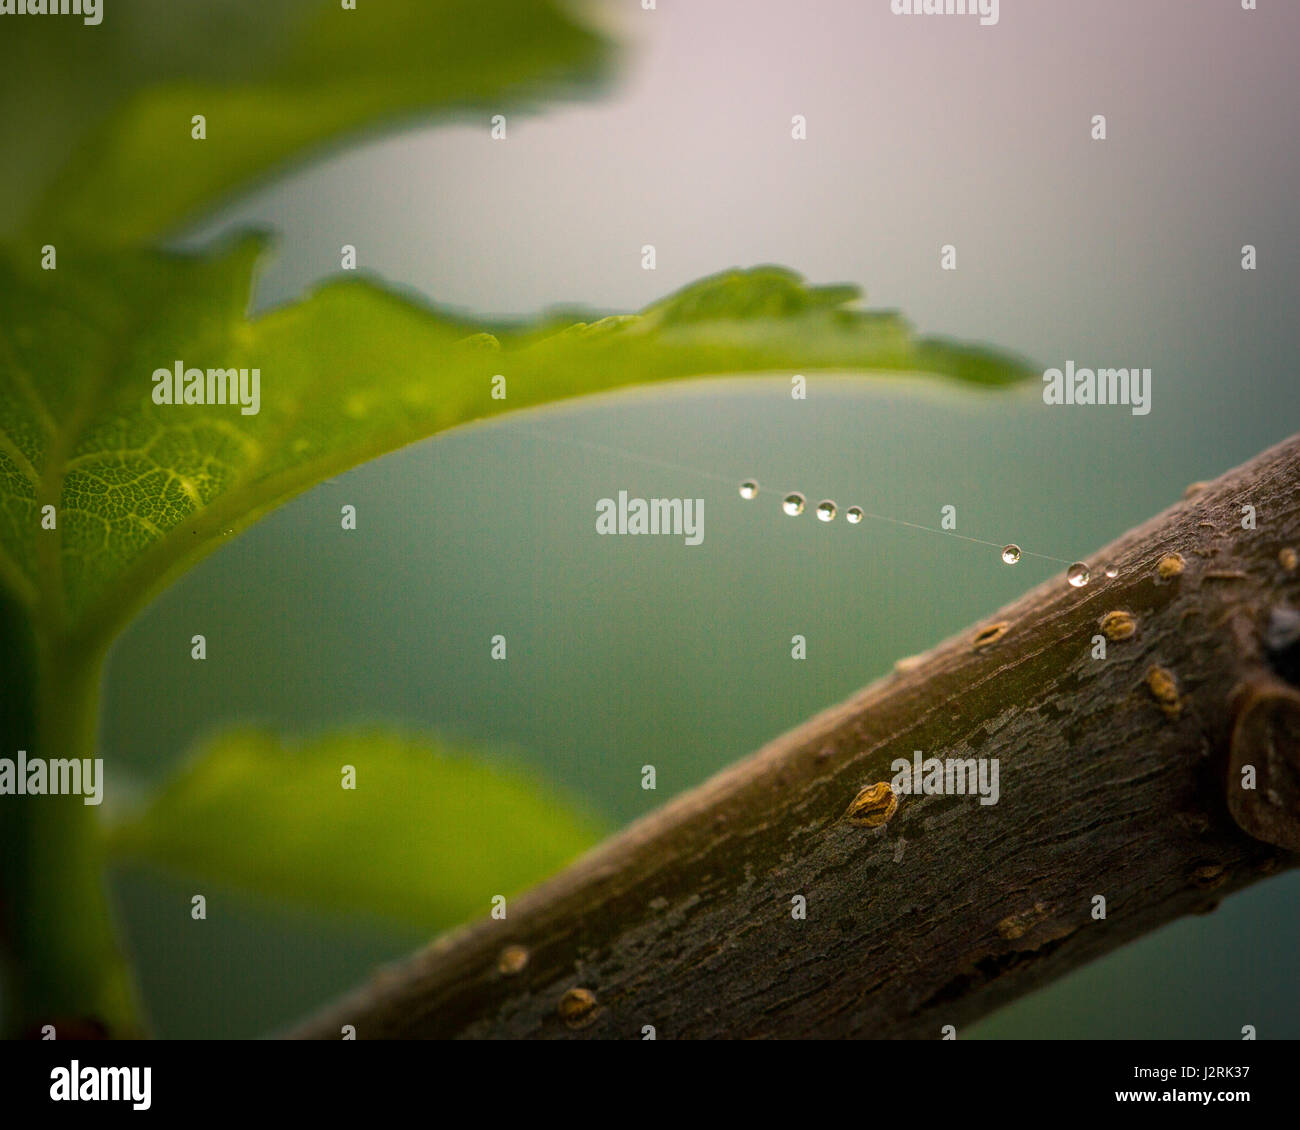 Spider webs with raindrops - Stock Image